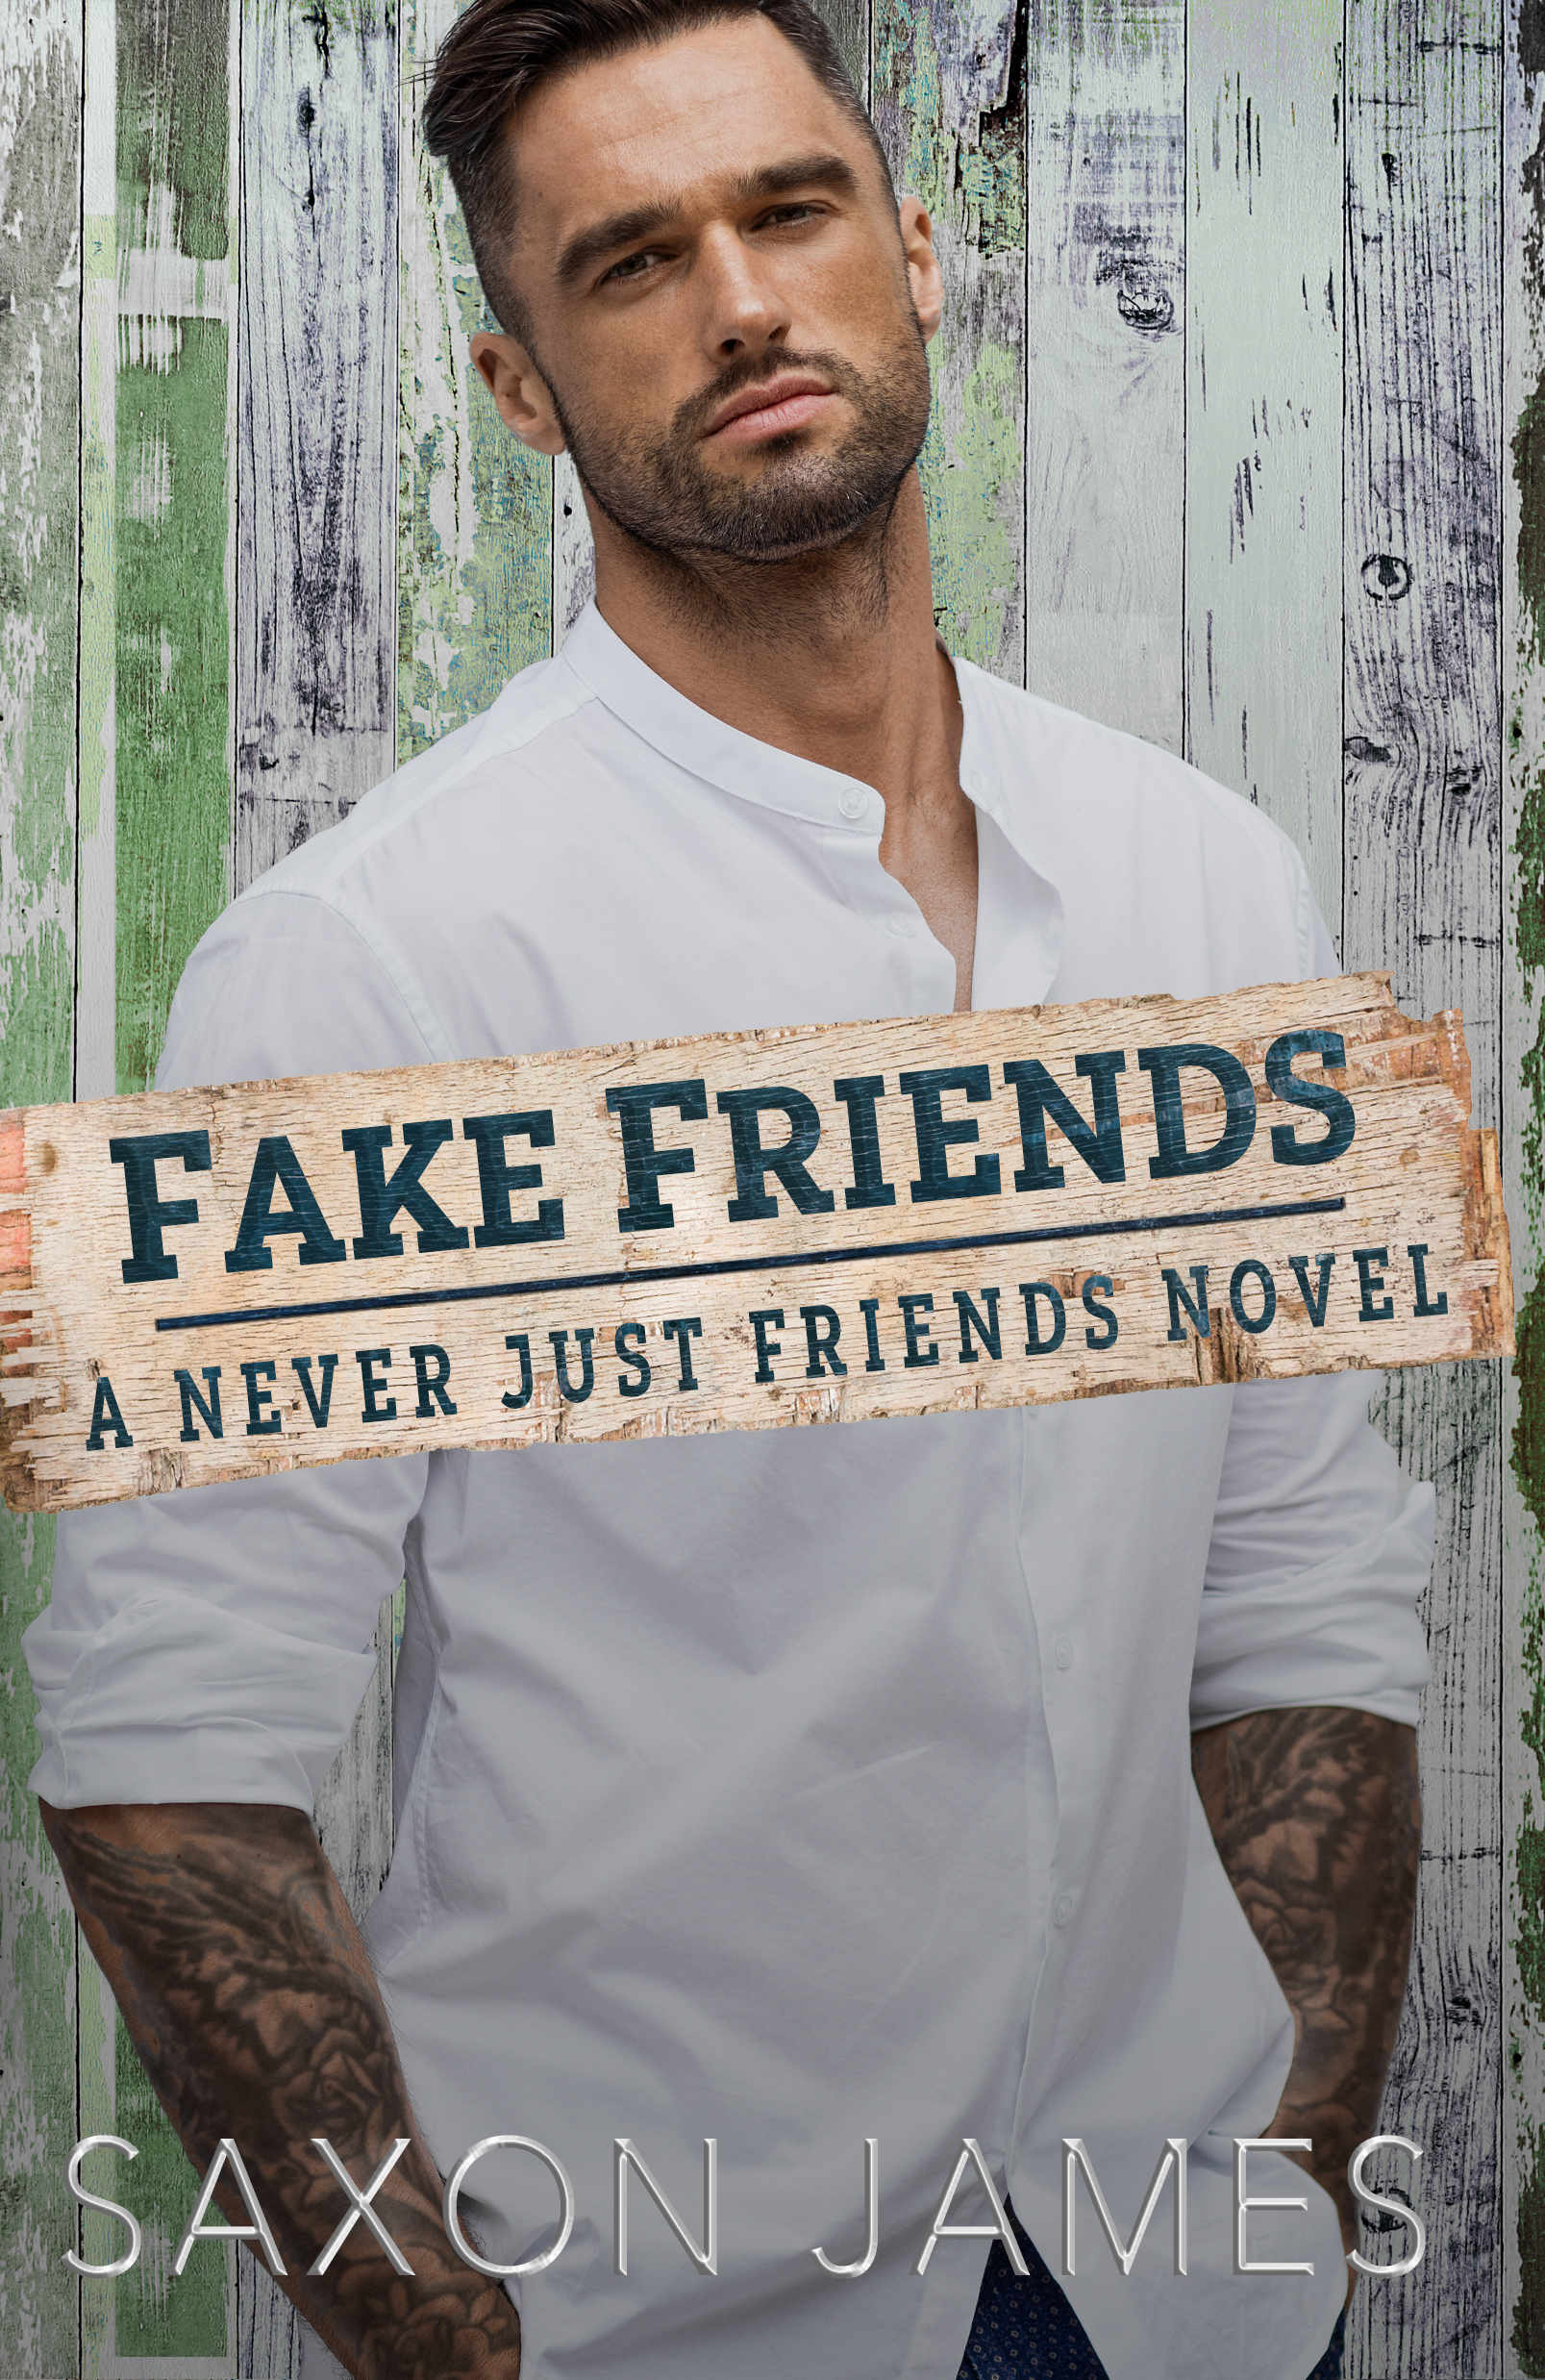 Fake Friends book 2 EBOOK just friends series